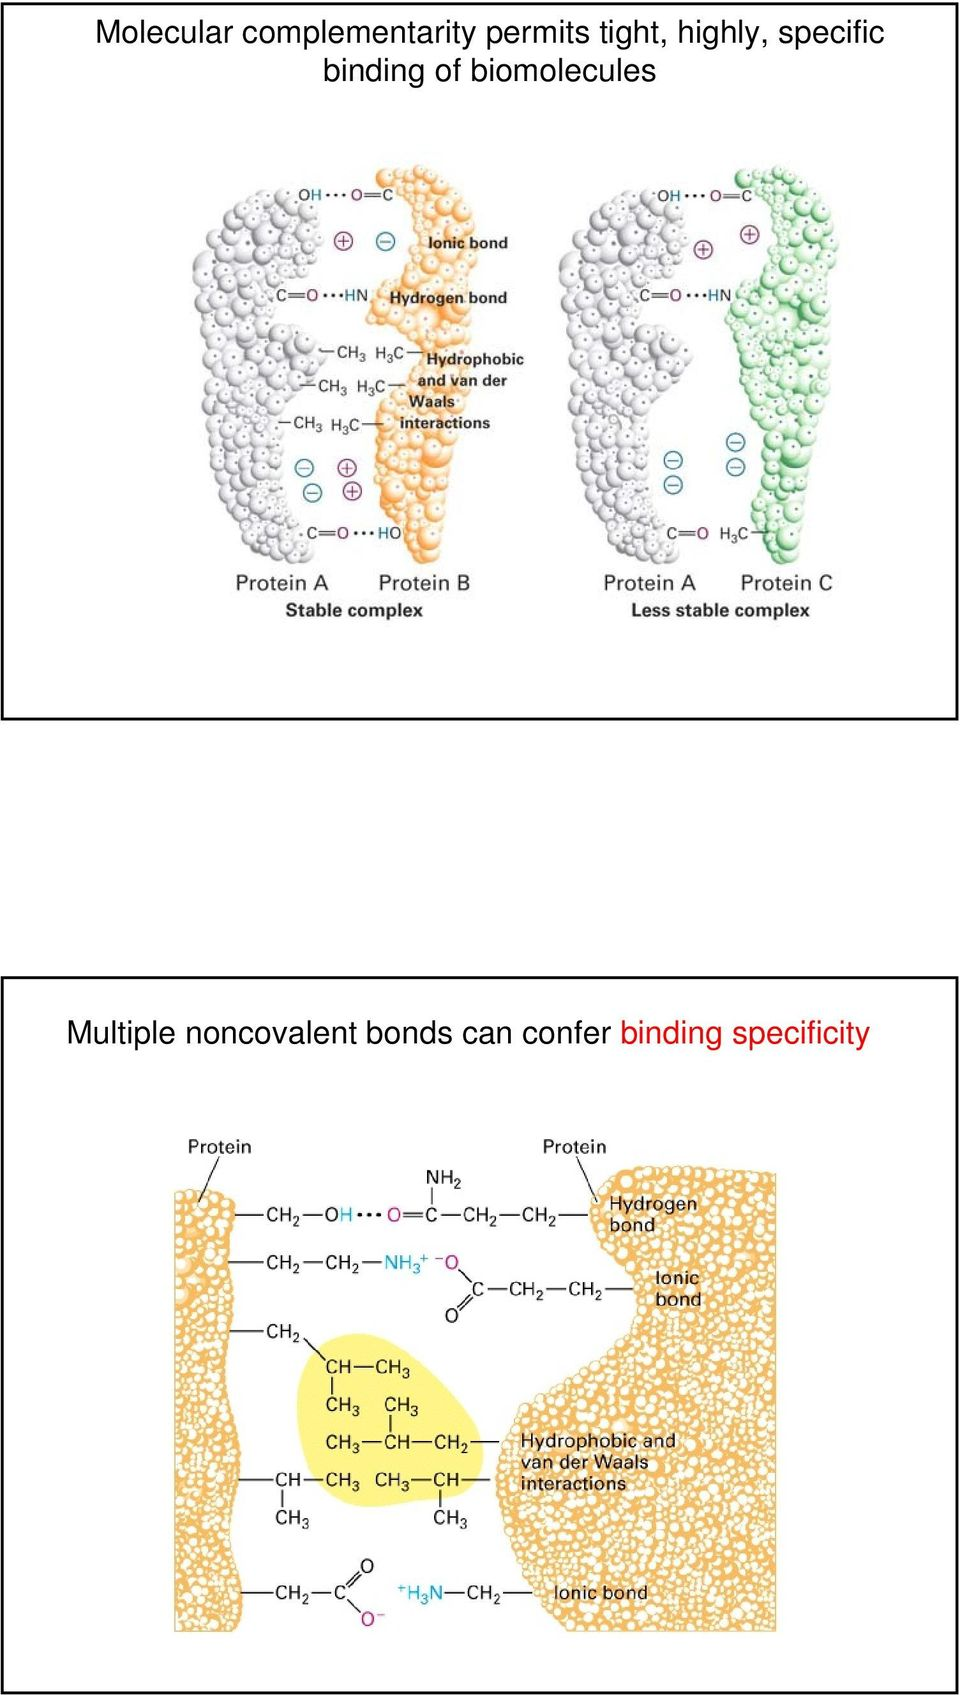 biomolecules Multiple noncovalent